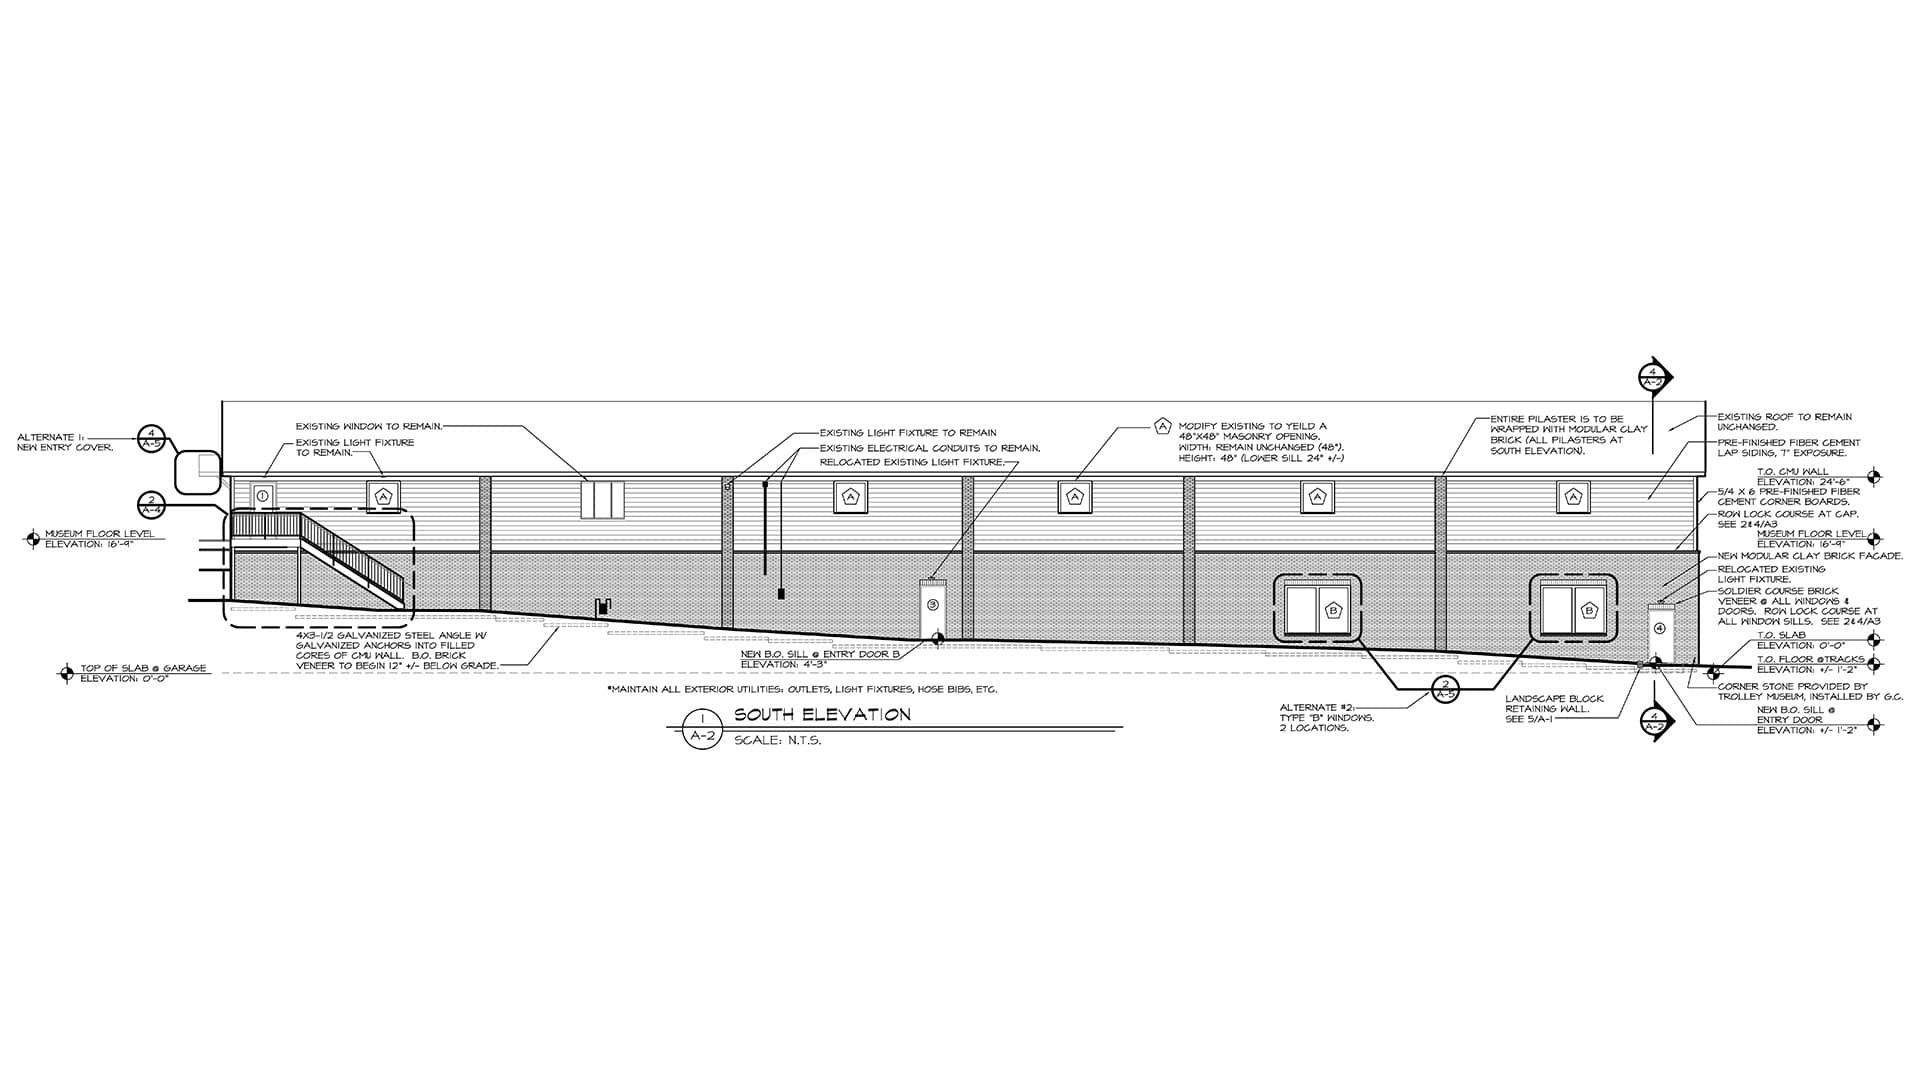 Elevation Drawing of the Kingston Trolley Museum